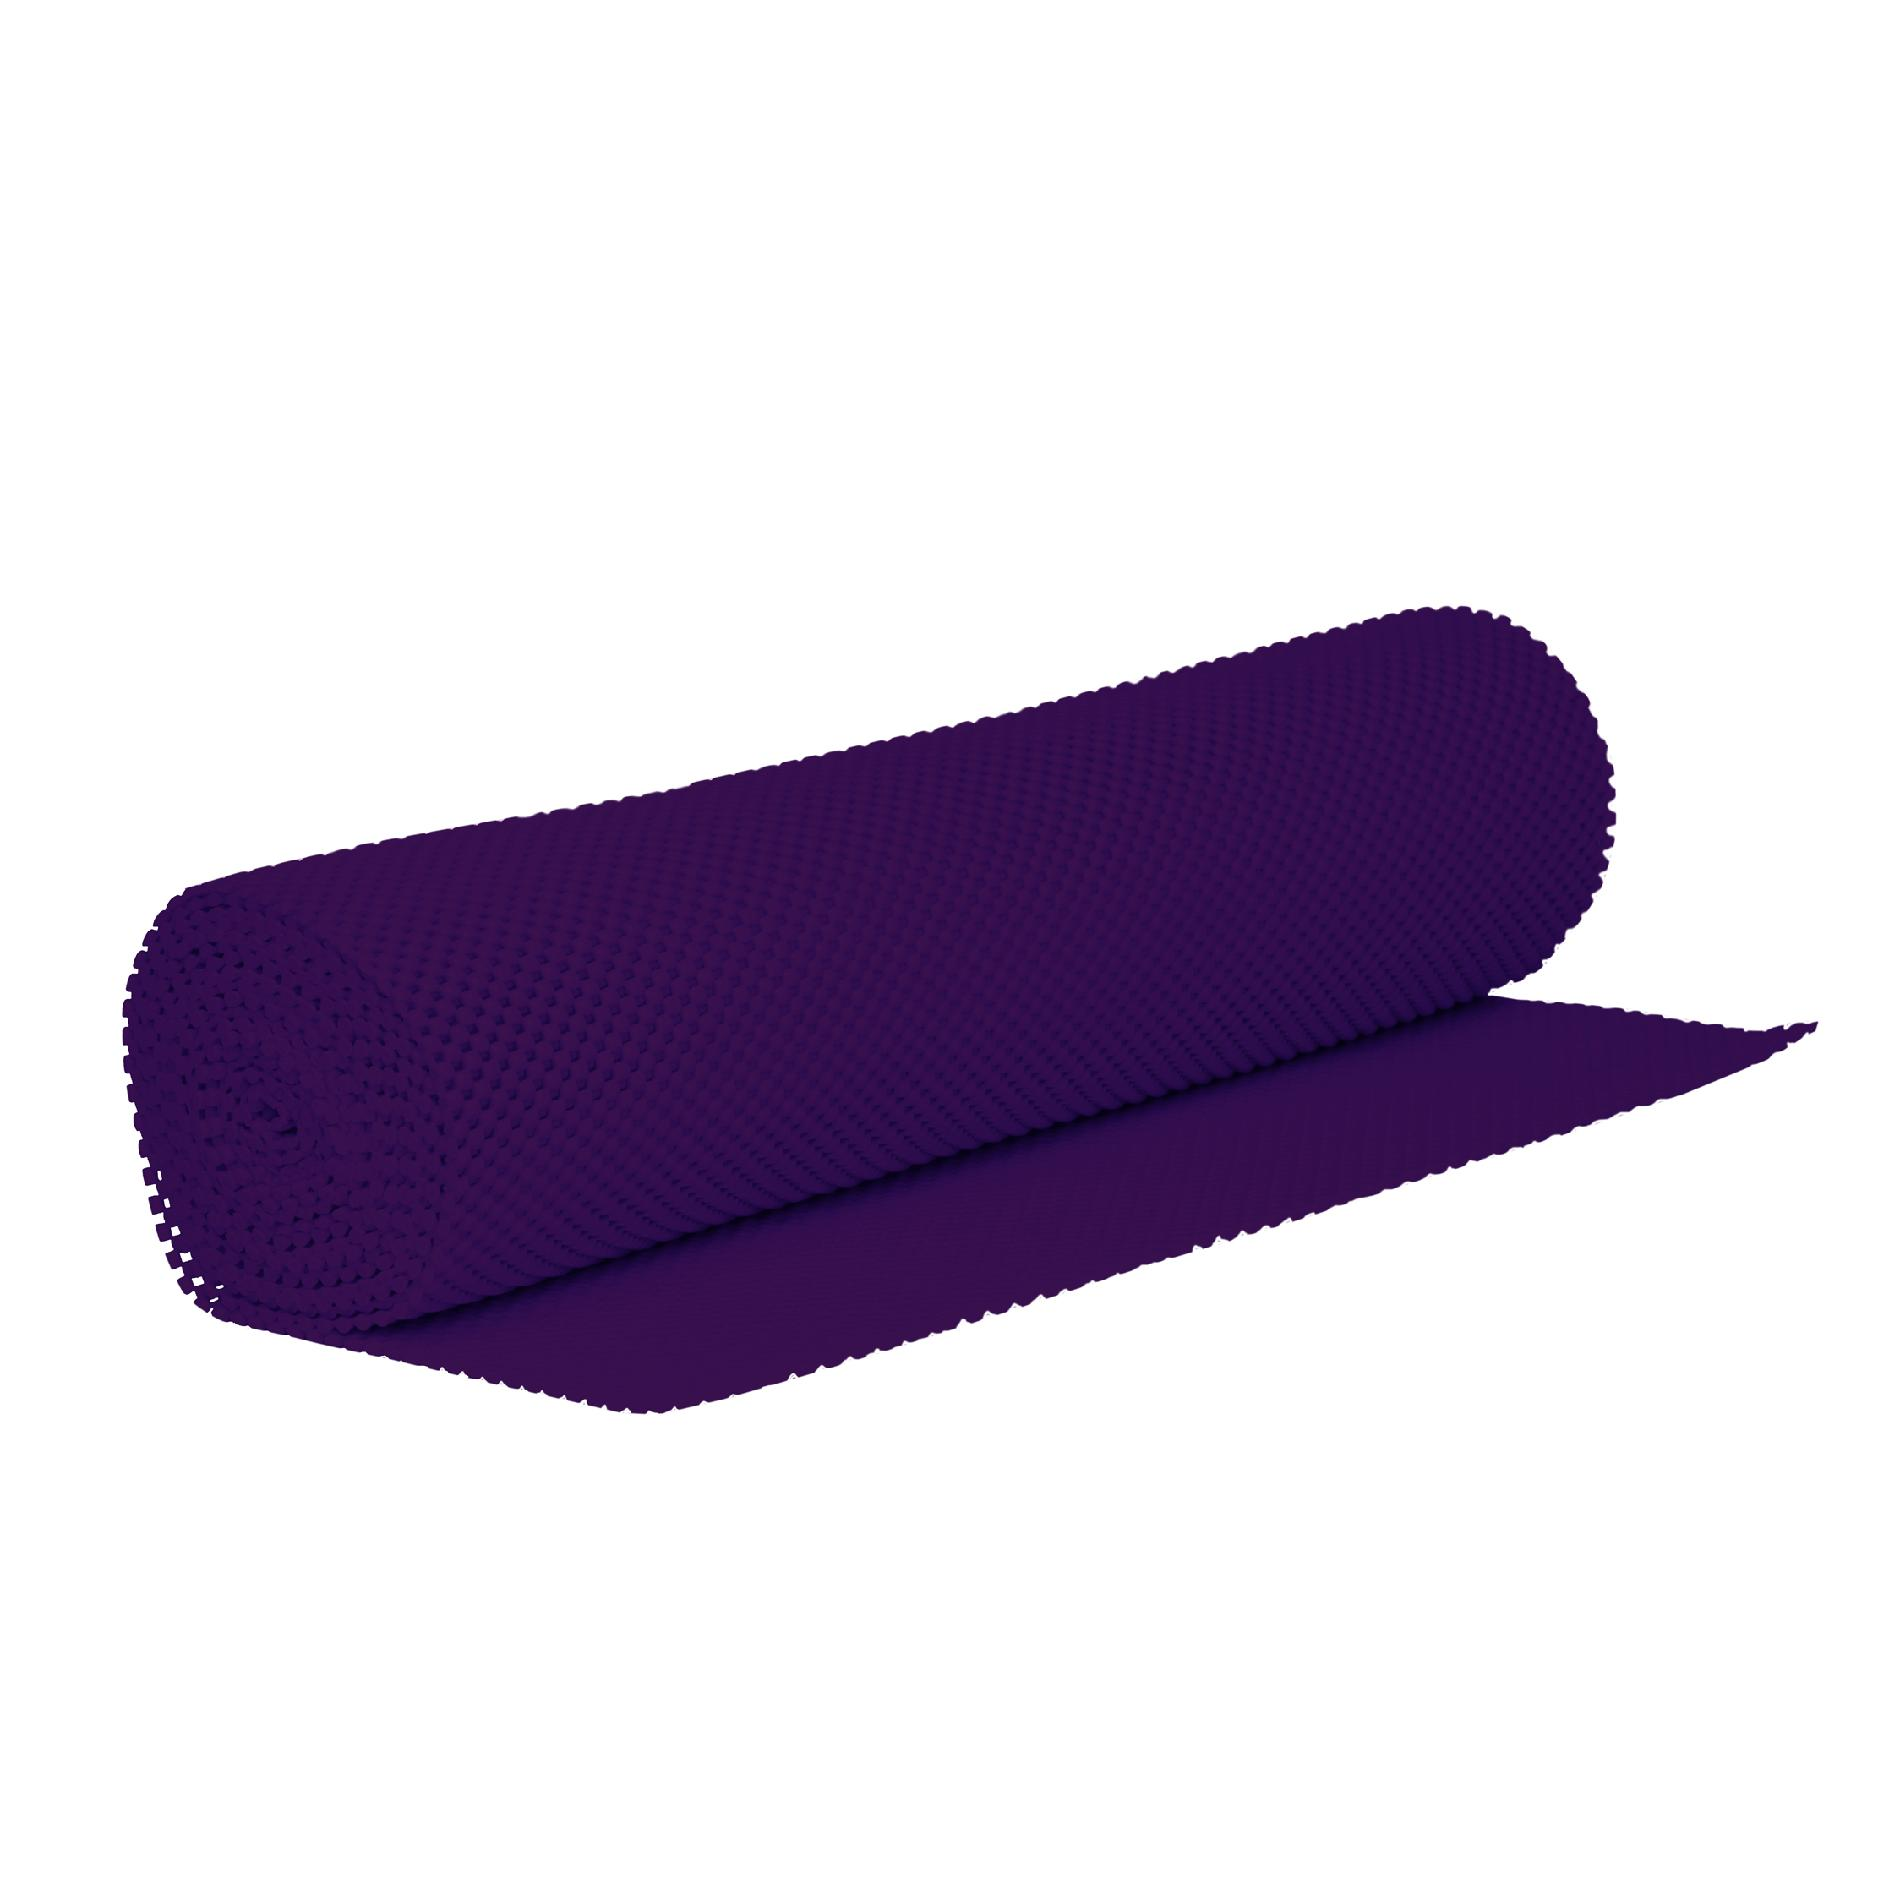 Viper Tool Storage 18-Inch x 12-Foot Drawer Liner, Purple